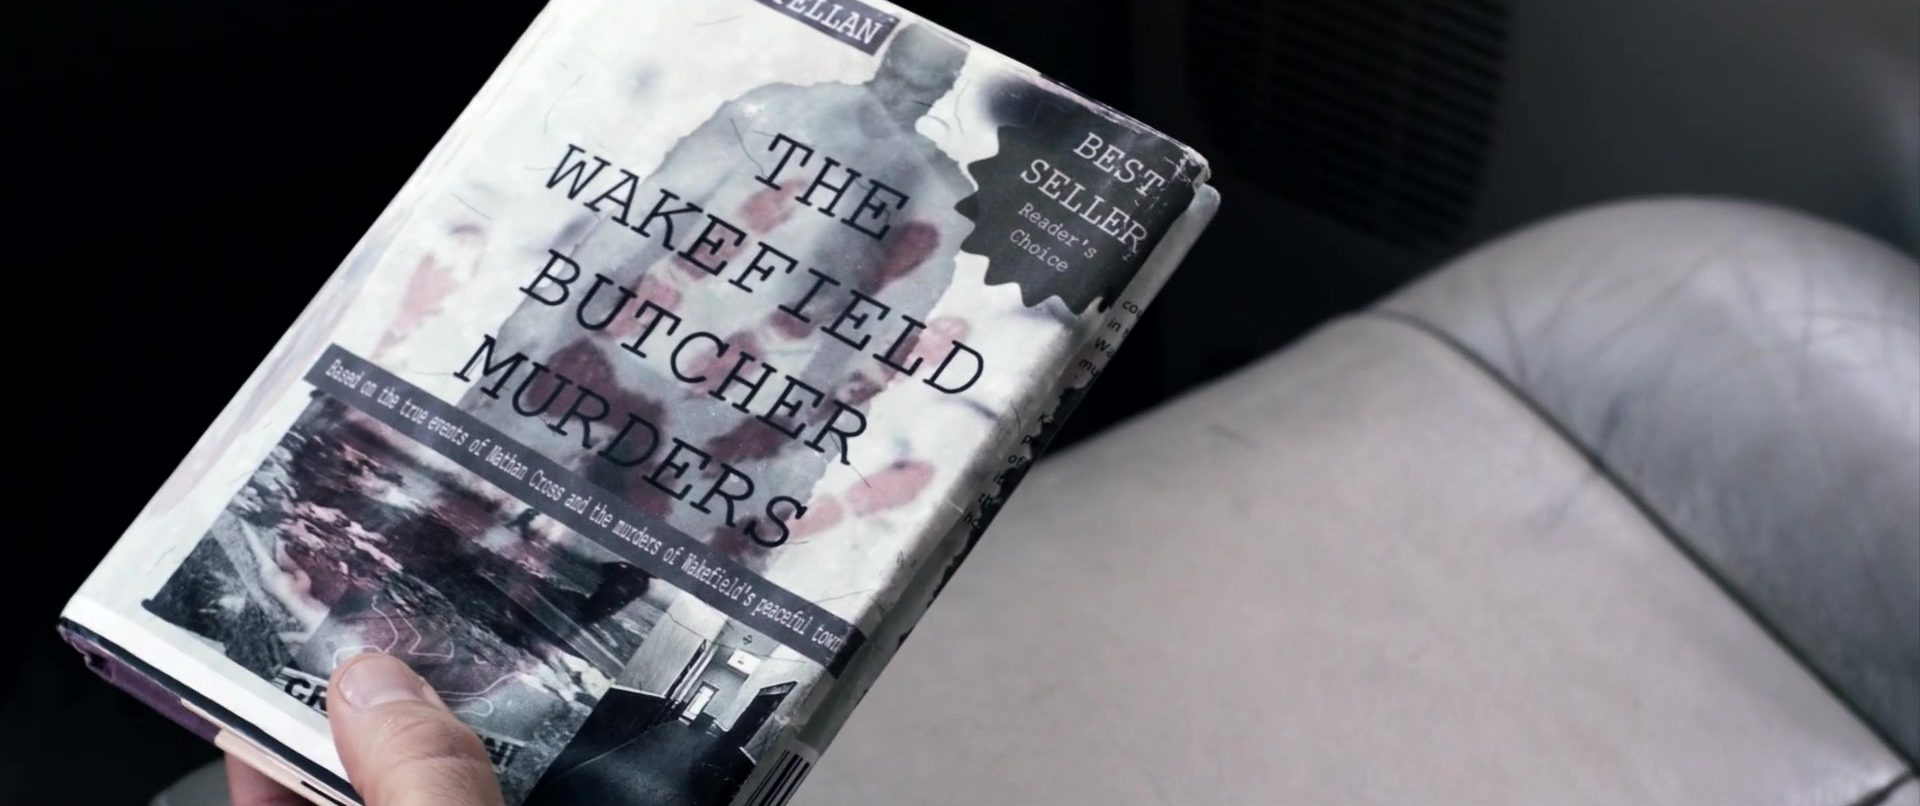 [Movie Review] A WAKEFIELD PROJECT